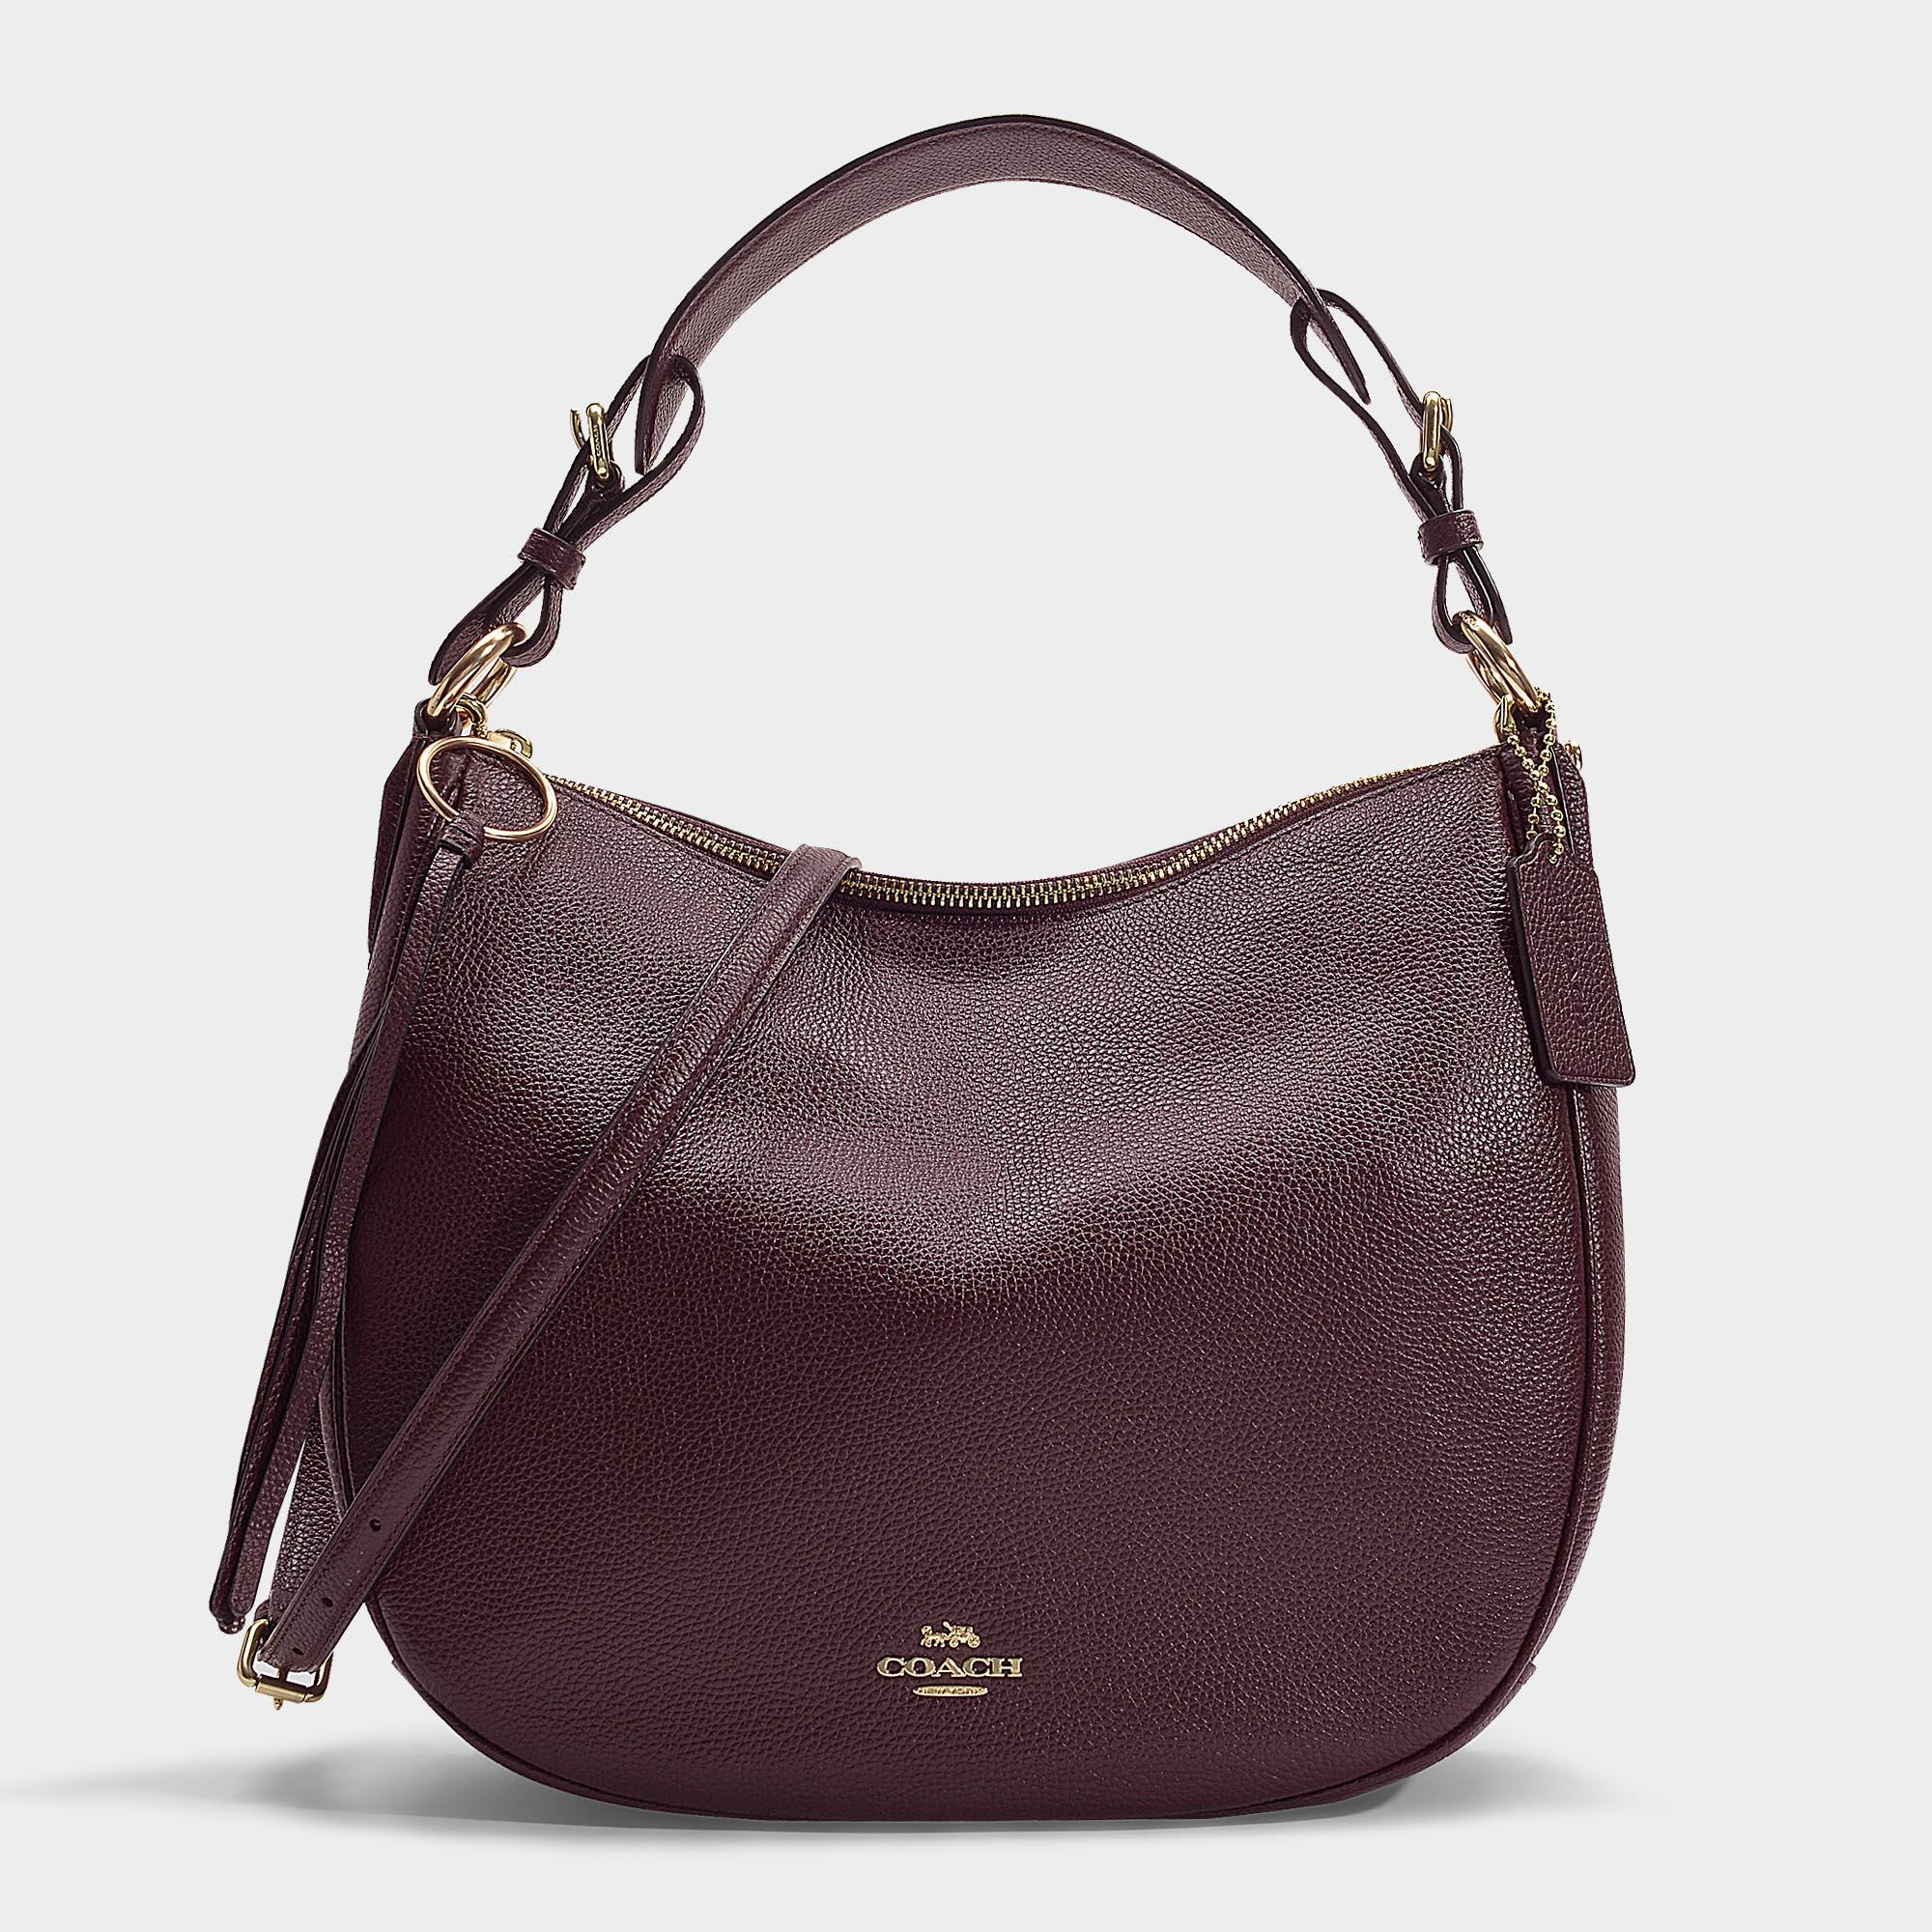 d3367f57db58 COACH - Red Polished Pebble Leather Sutton Hobo Bag In Burgundy Calfskin -  Lyst. View fullscreen